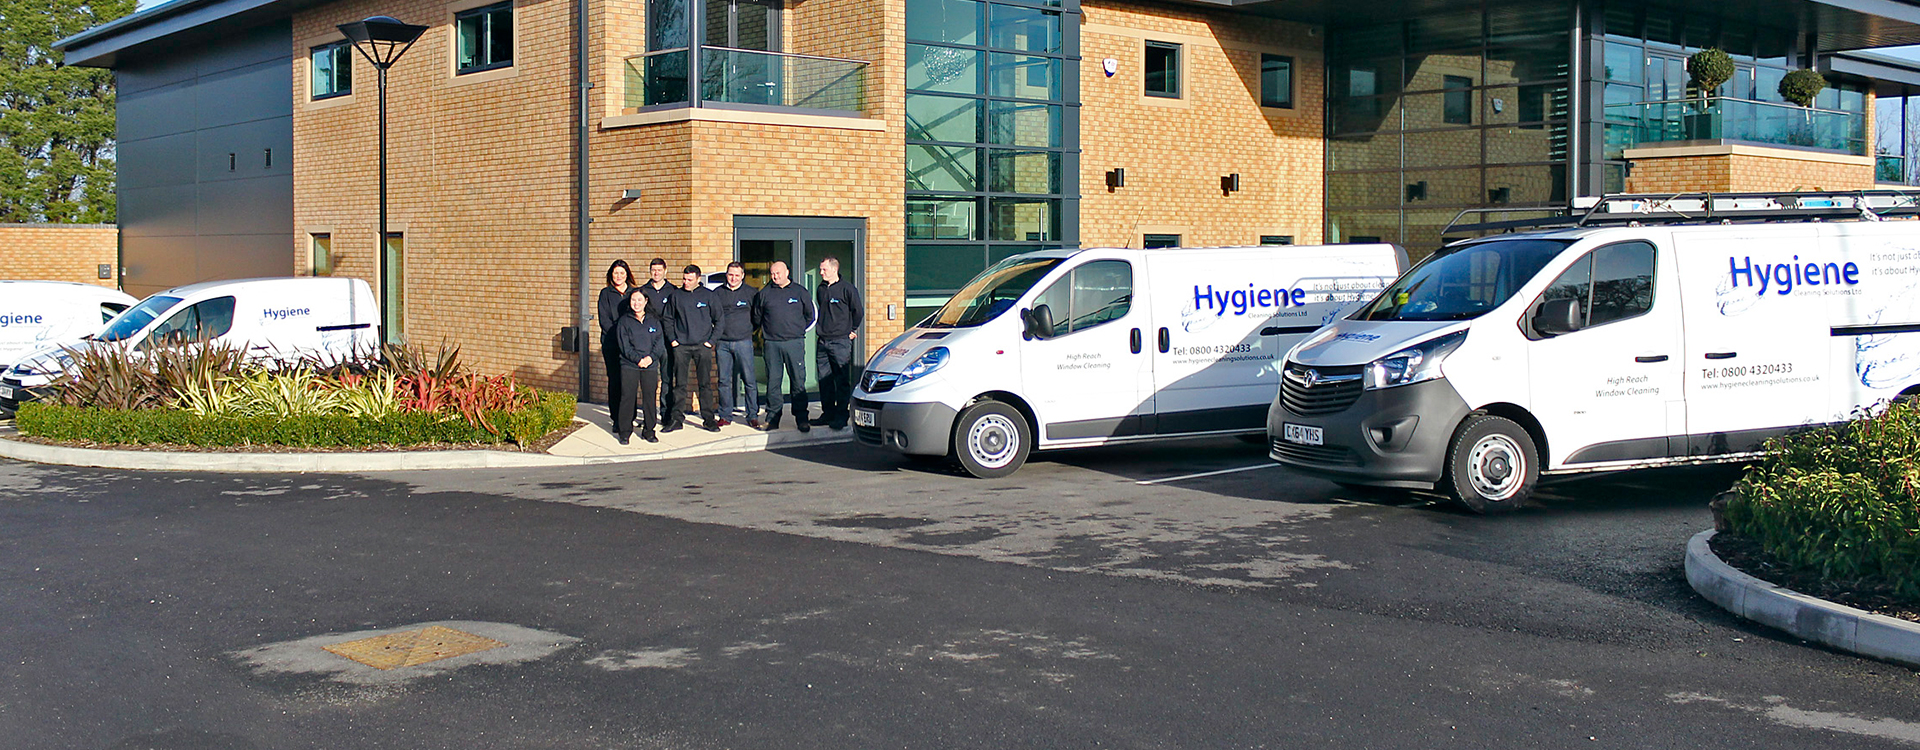 Hygiene Cleaning Team Image